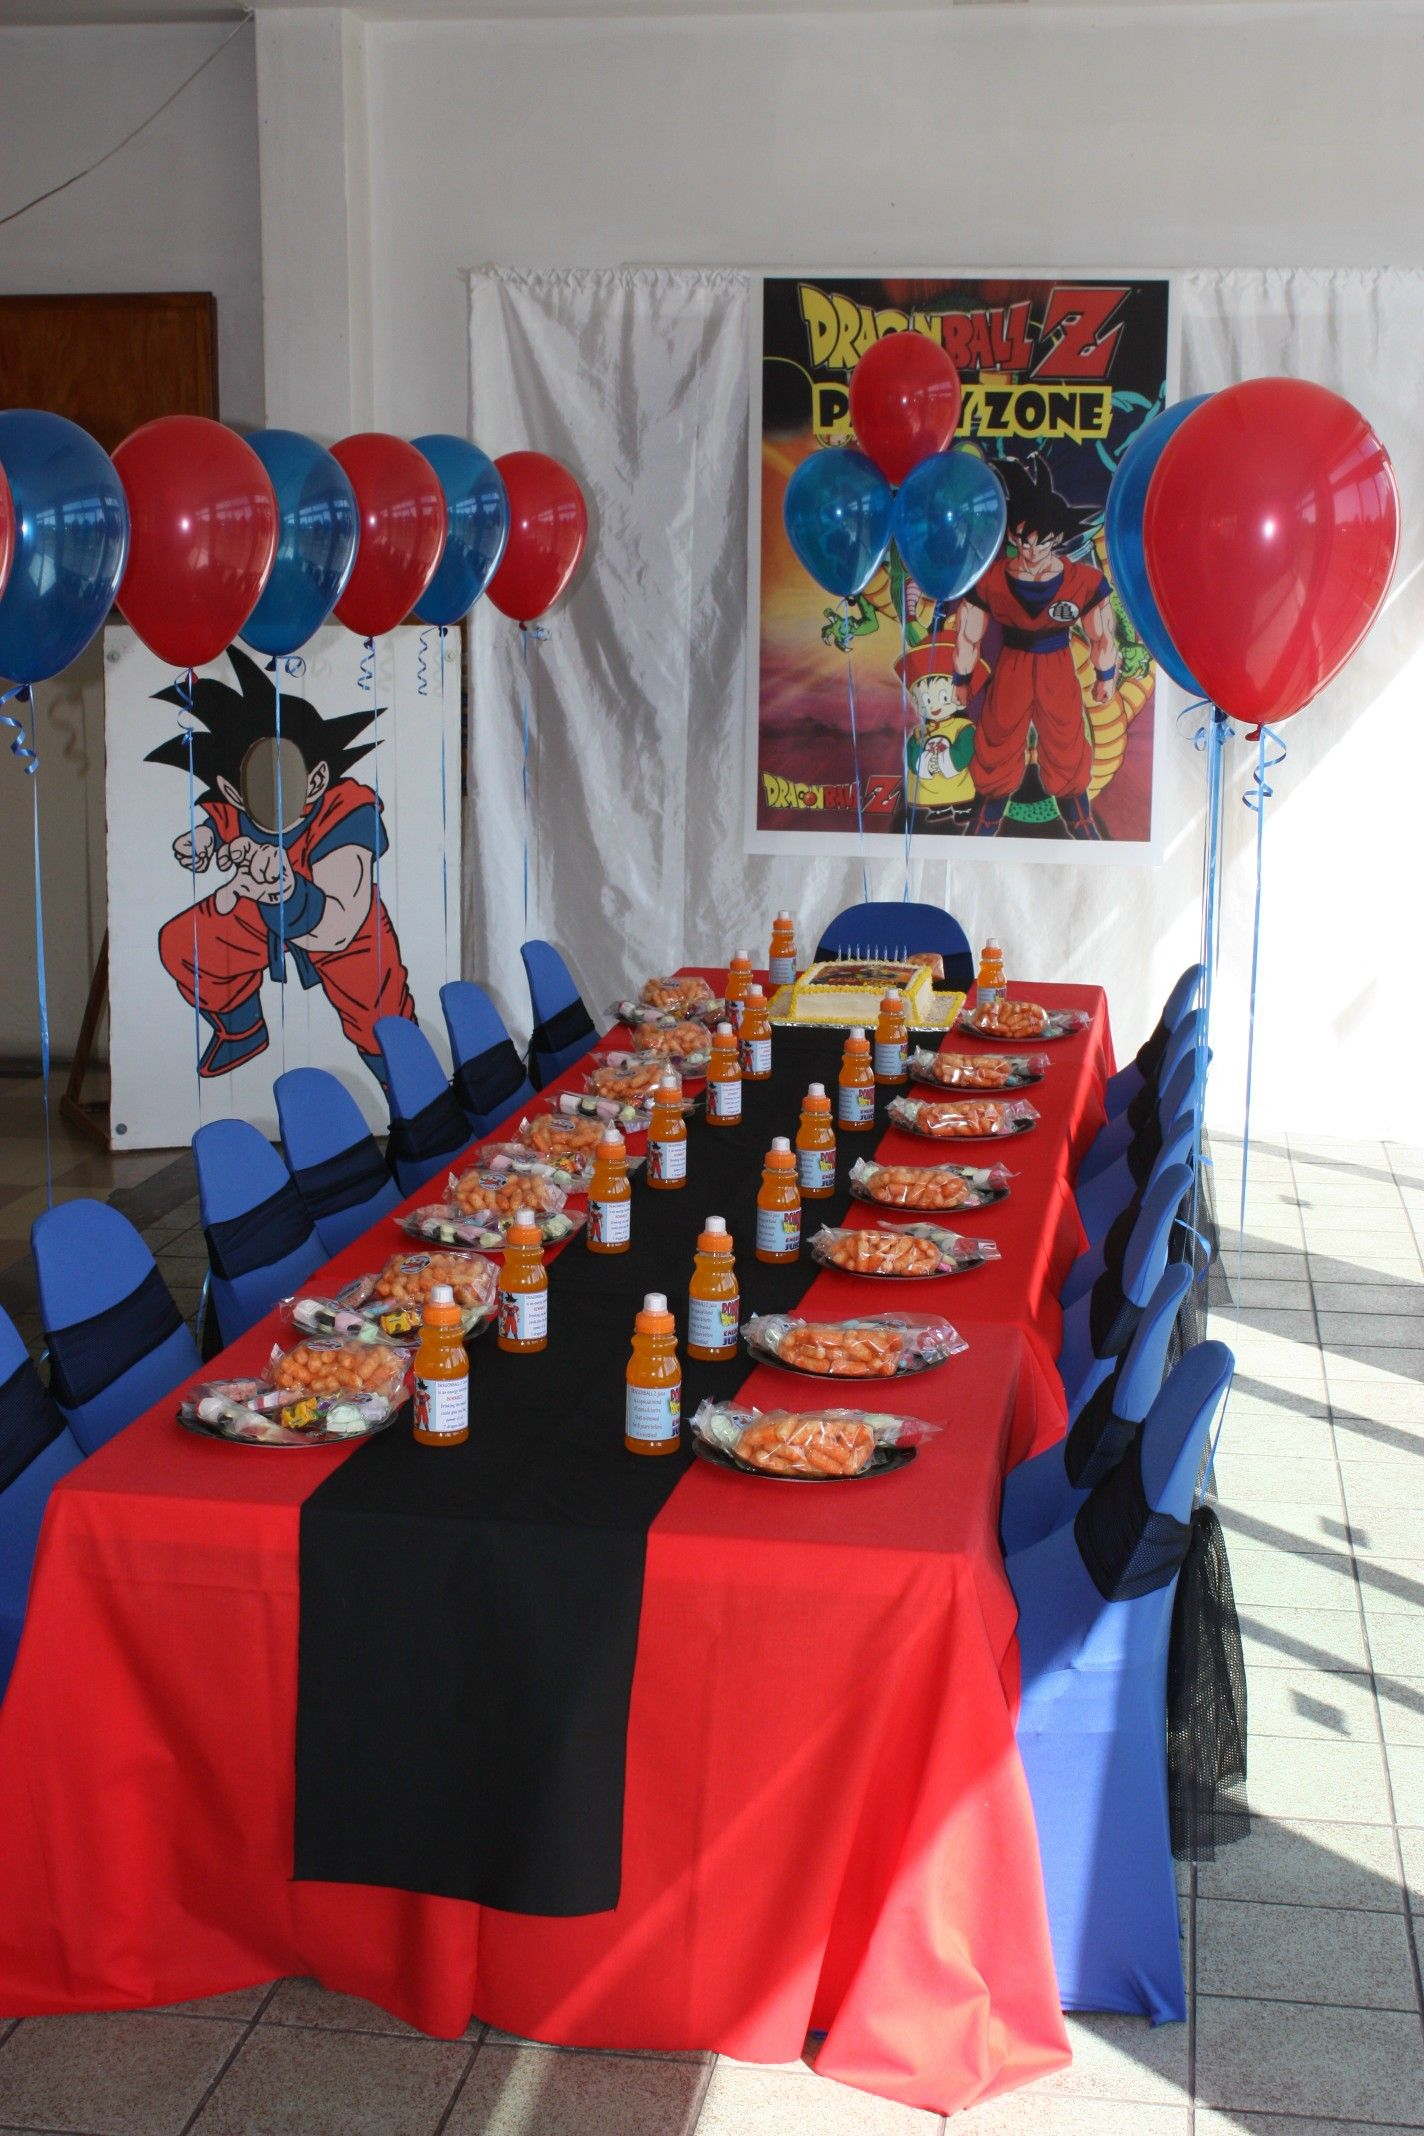 Dragonball z party kids zone pinterest dragon ball for Decoration dragon ball